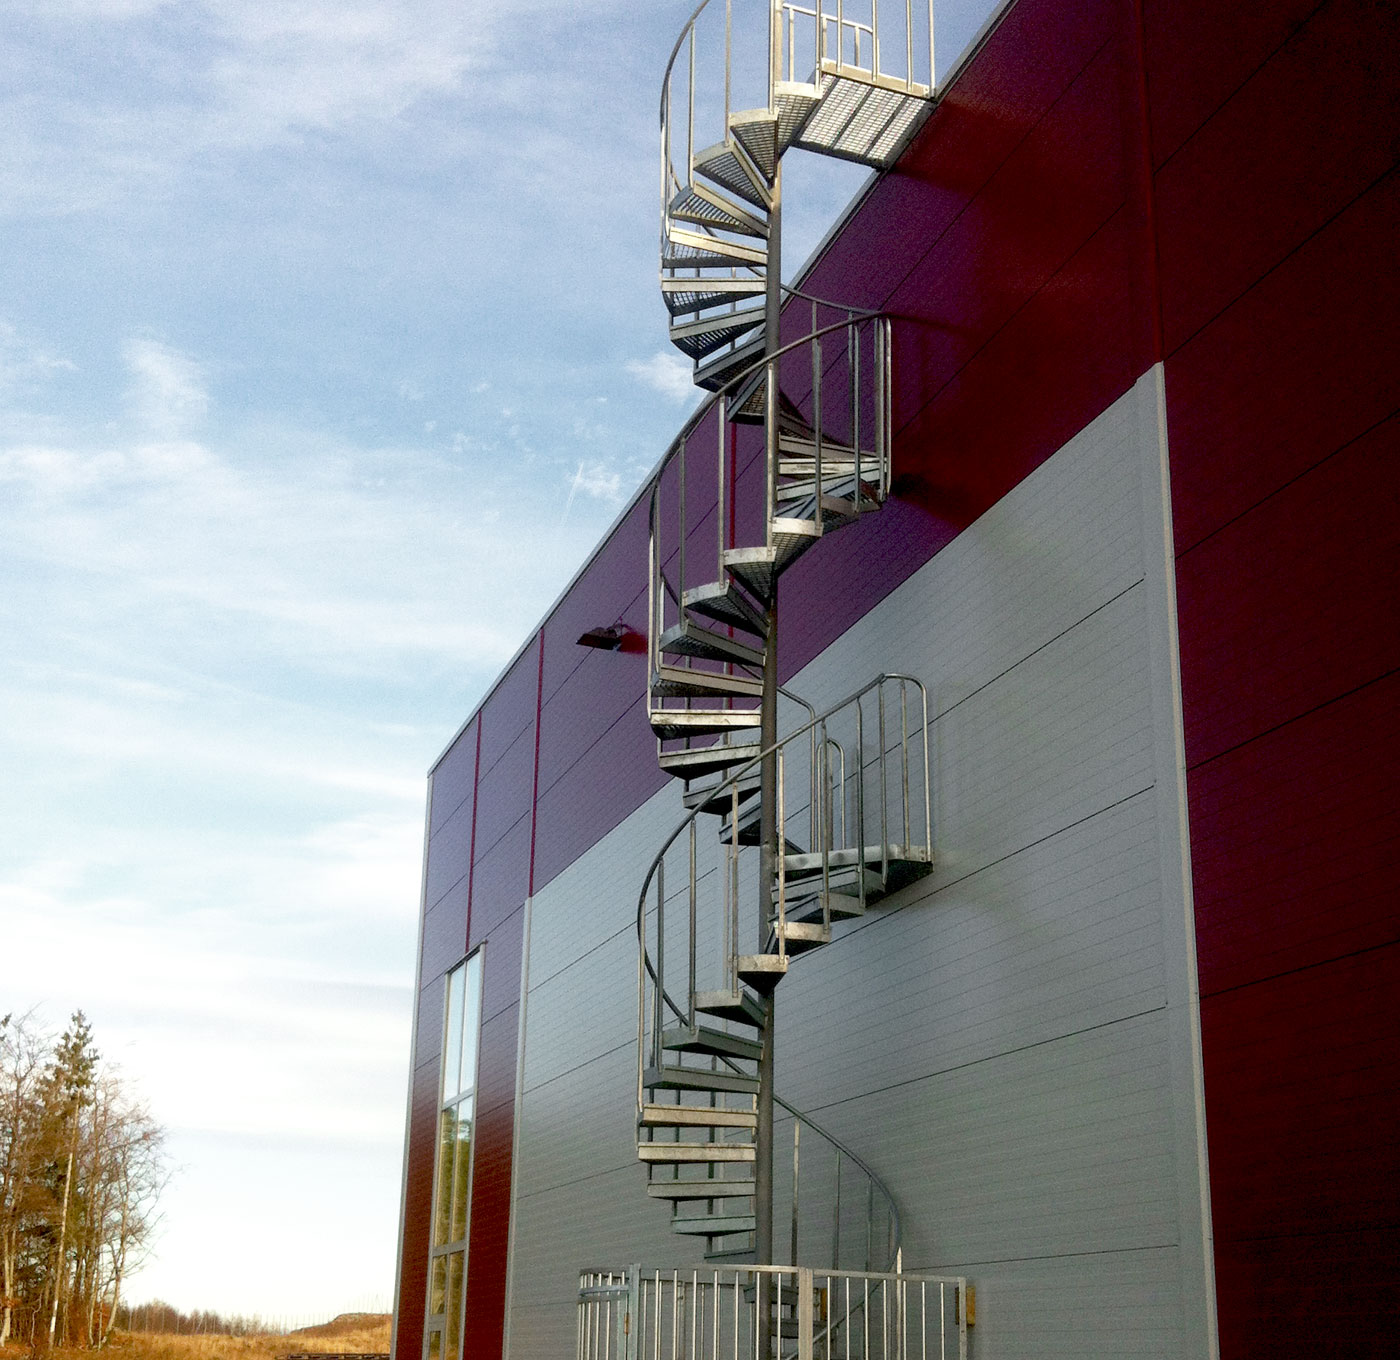 Spiral staircase standard outdoors with steps of grating